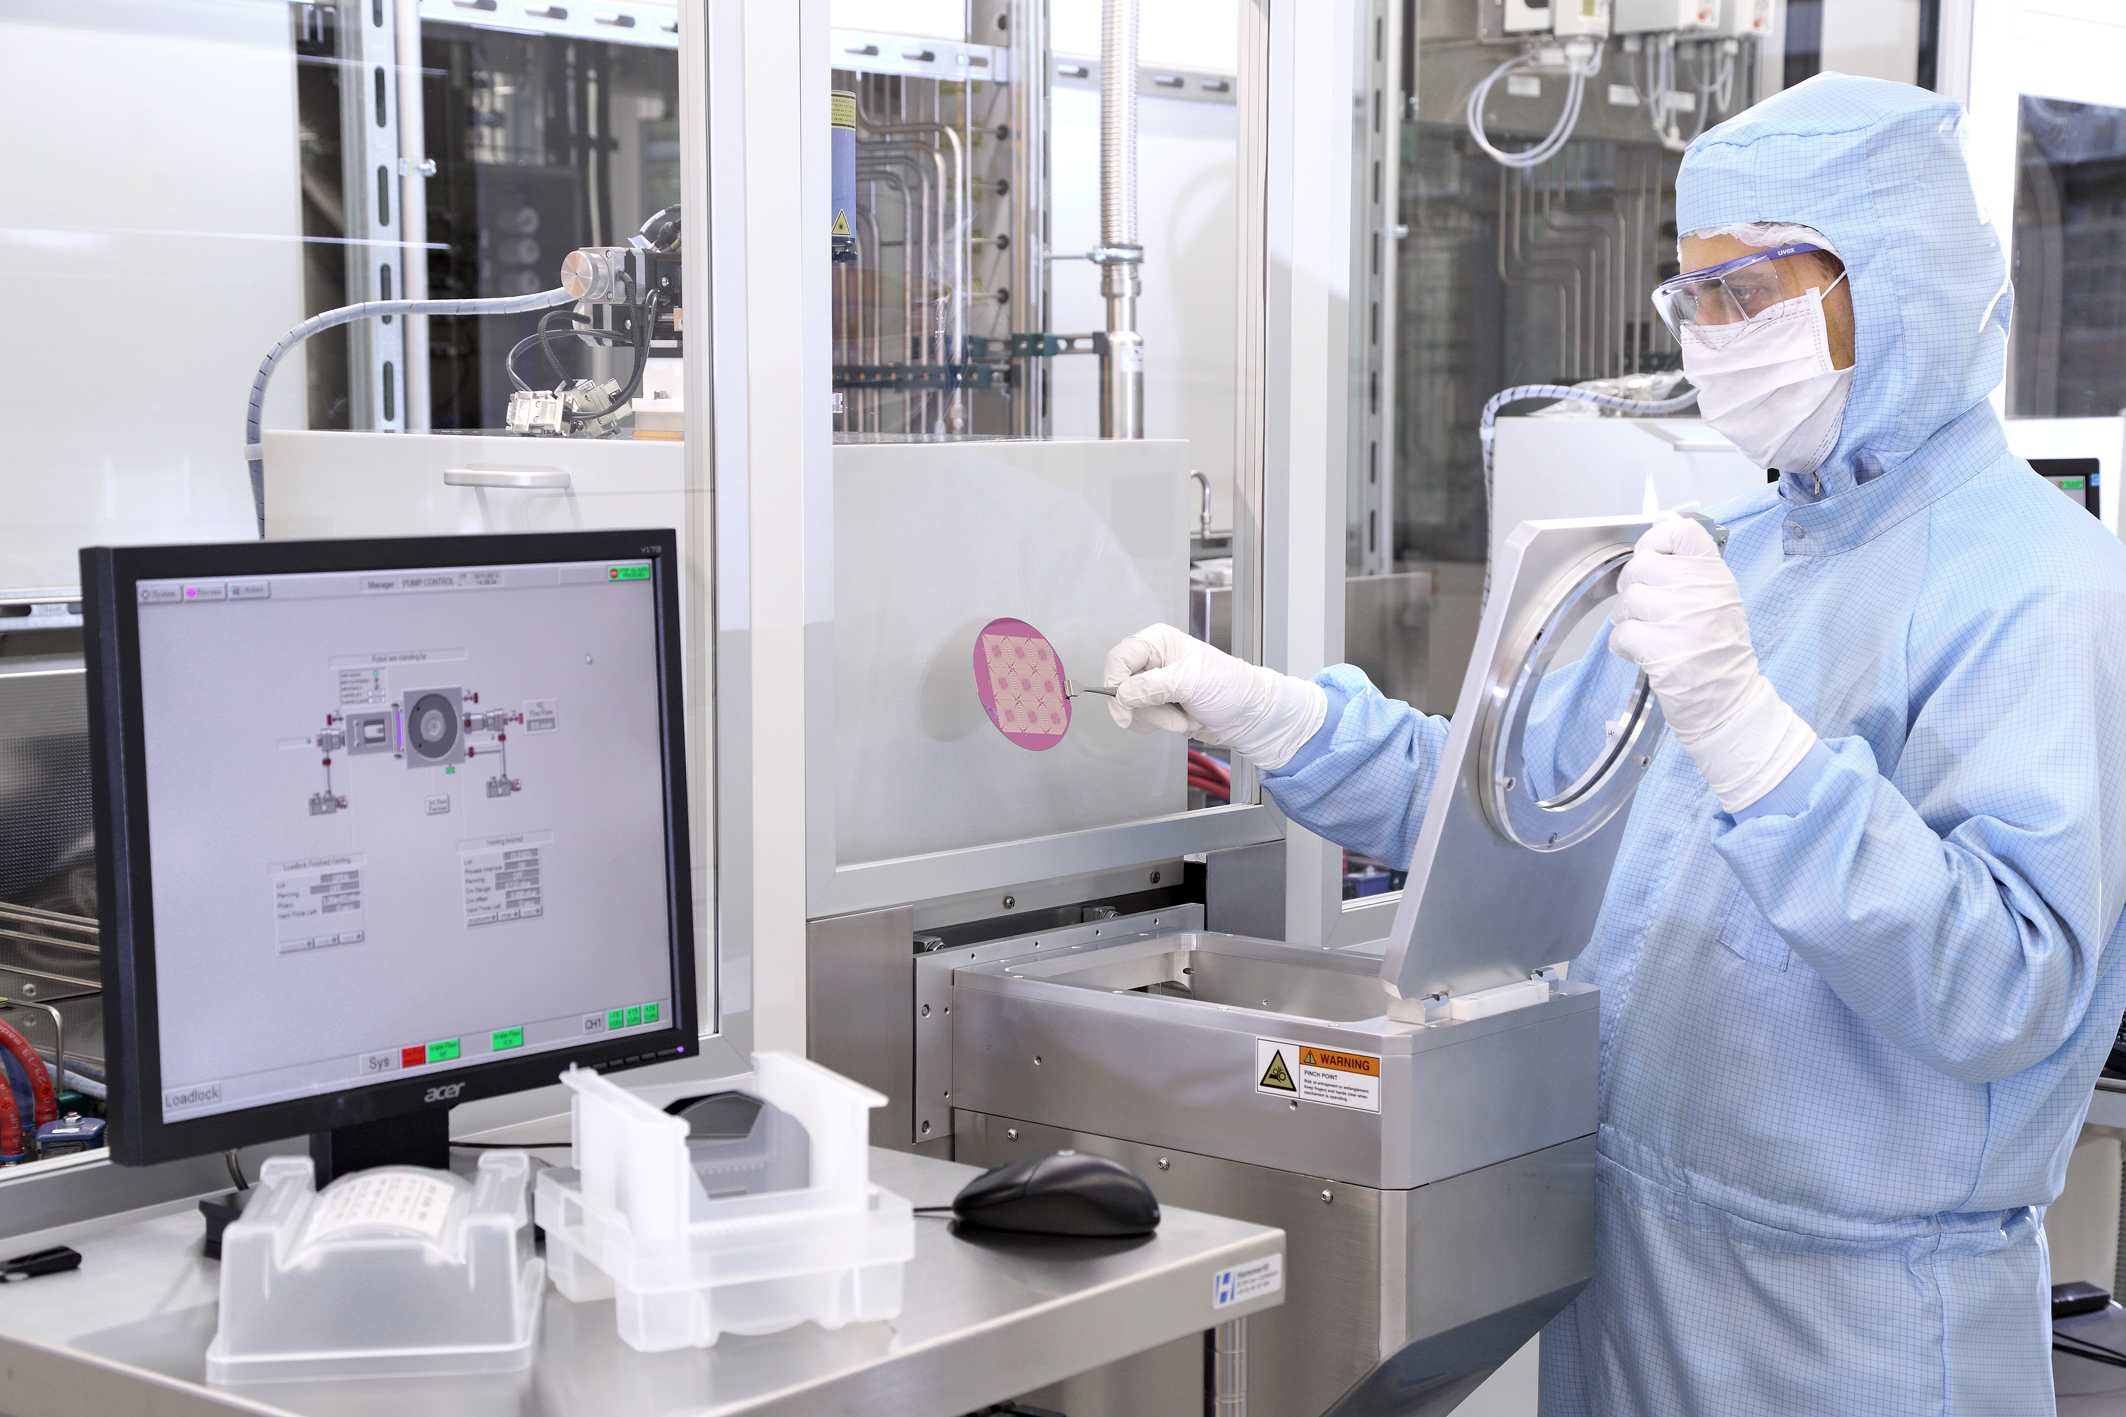 Researchers in the Helmholtz Nano Facility